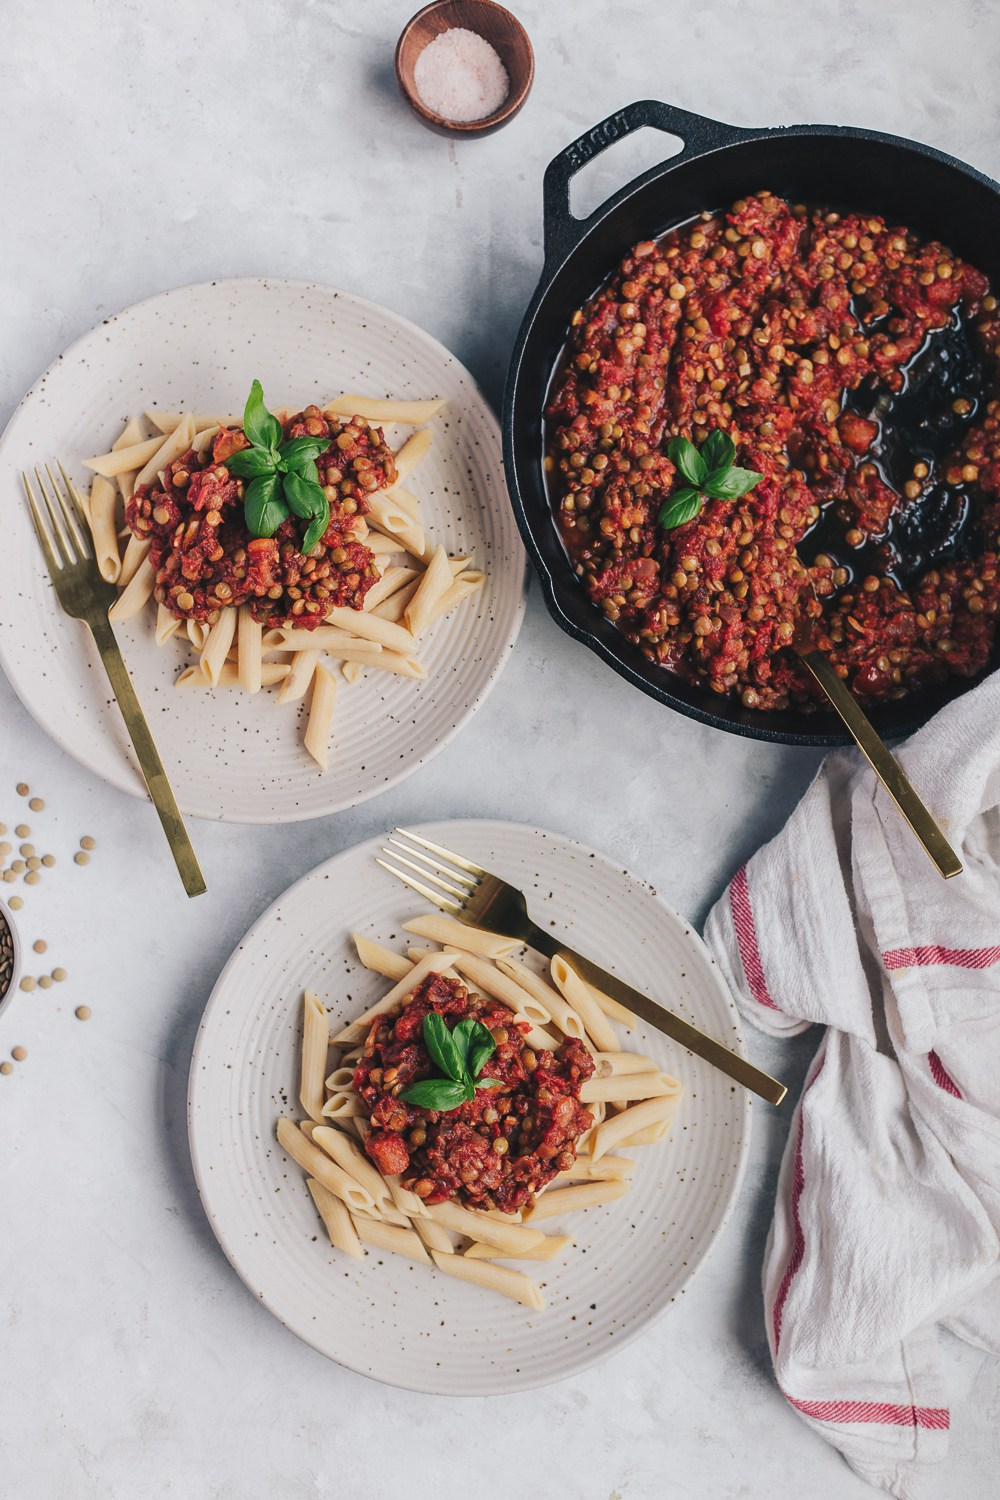 @natteats's cover photo for 'Vegan Lentil Bolognese Sauce with Chickpea Pasta - NattWrobel'